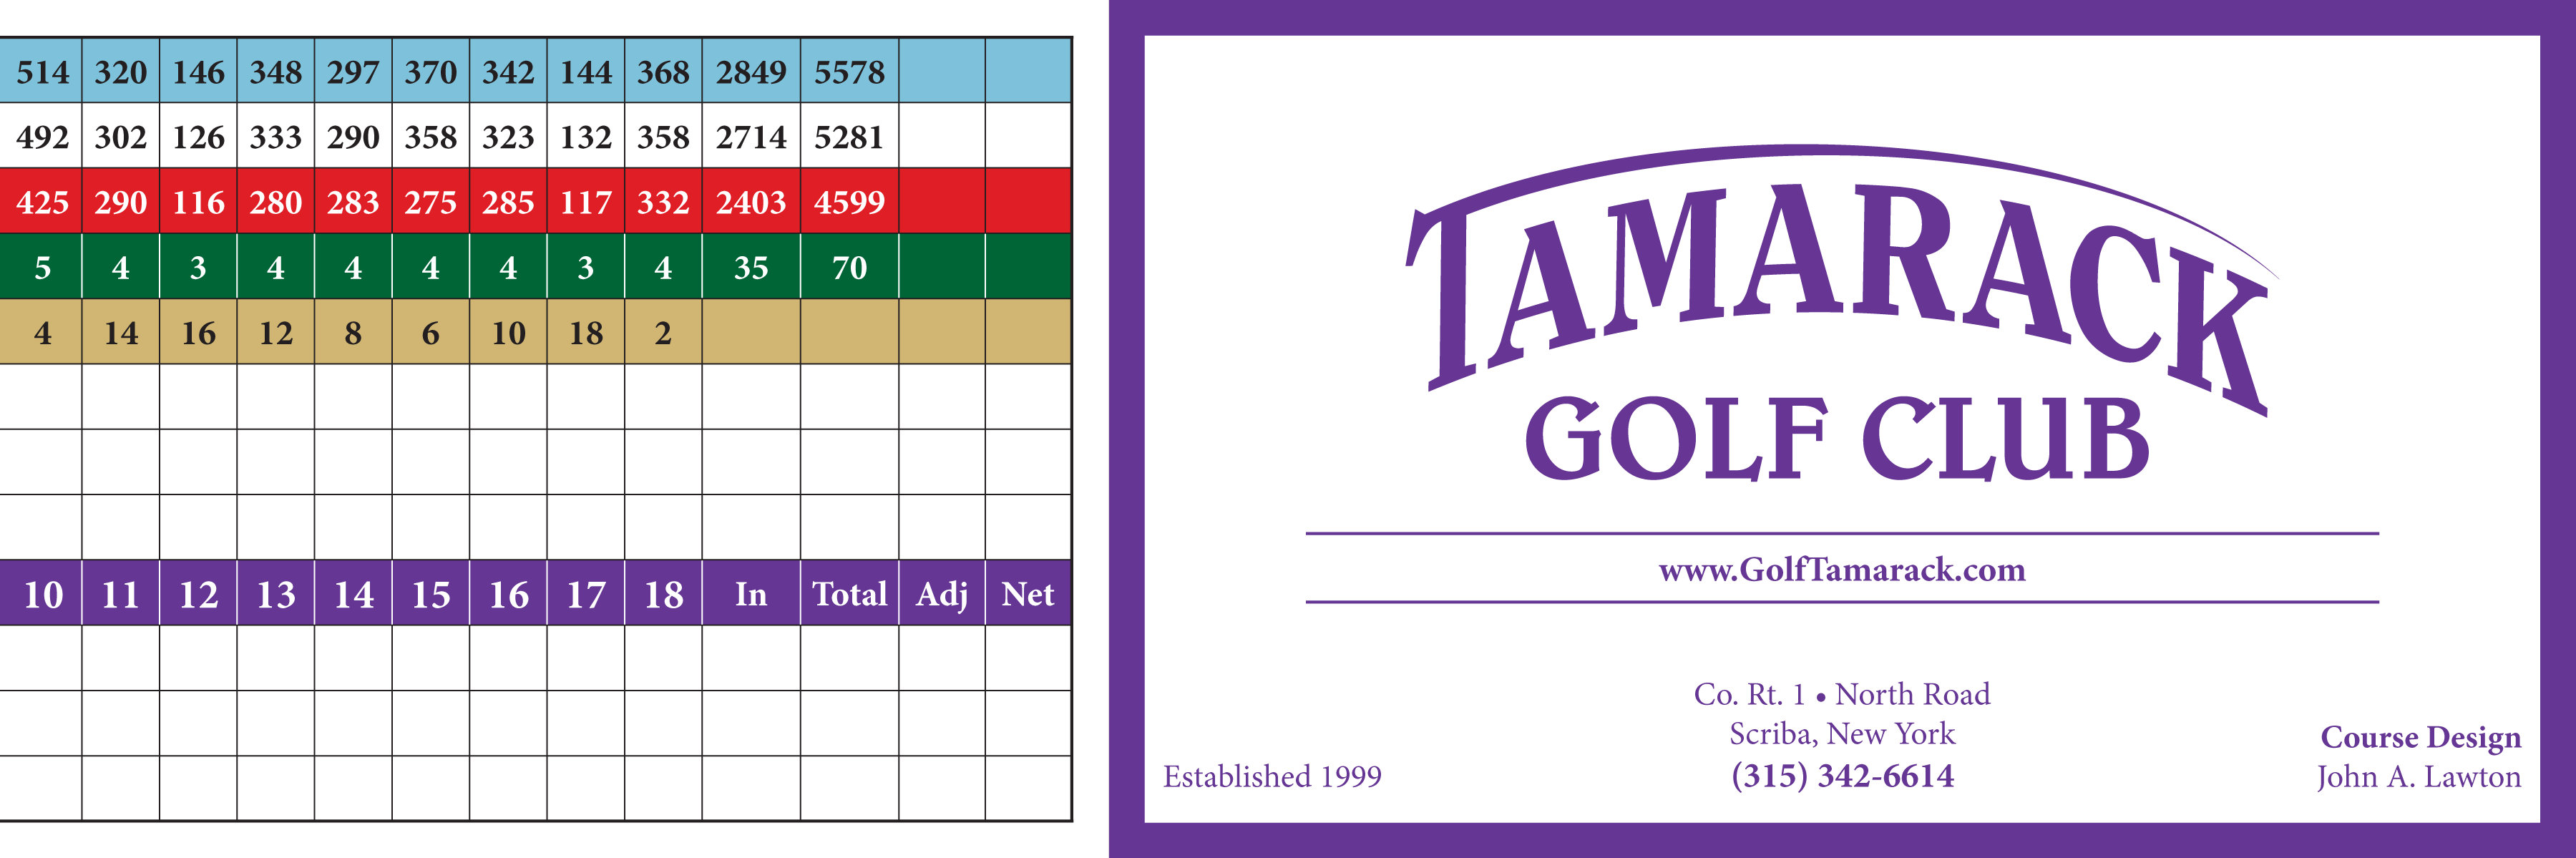 Image of the back of the score card at Tamarack Golf Club in Oswego, NY.